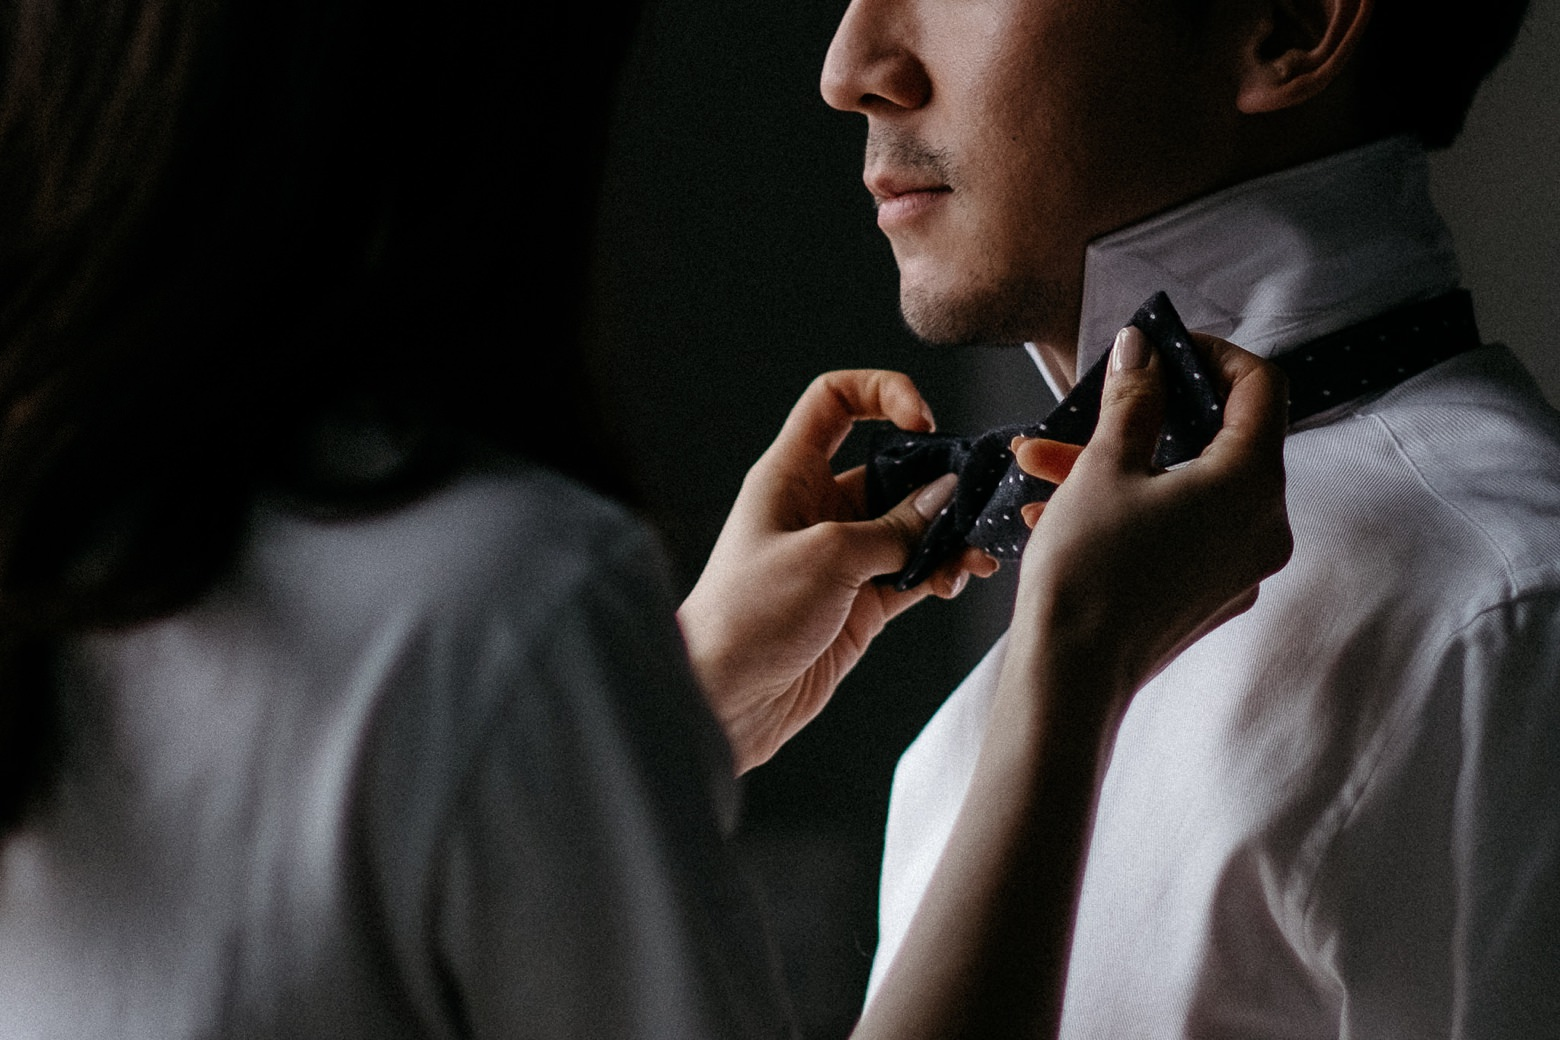 bride making bowtie on groom